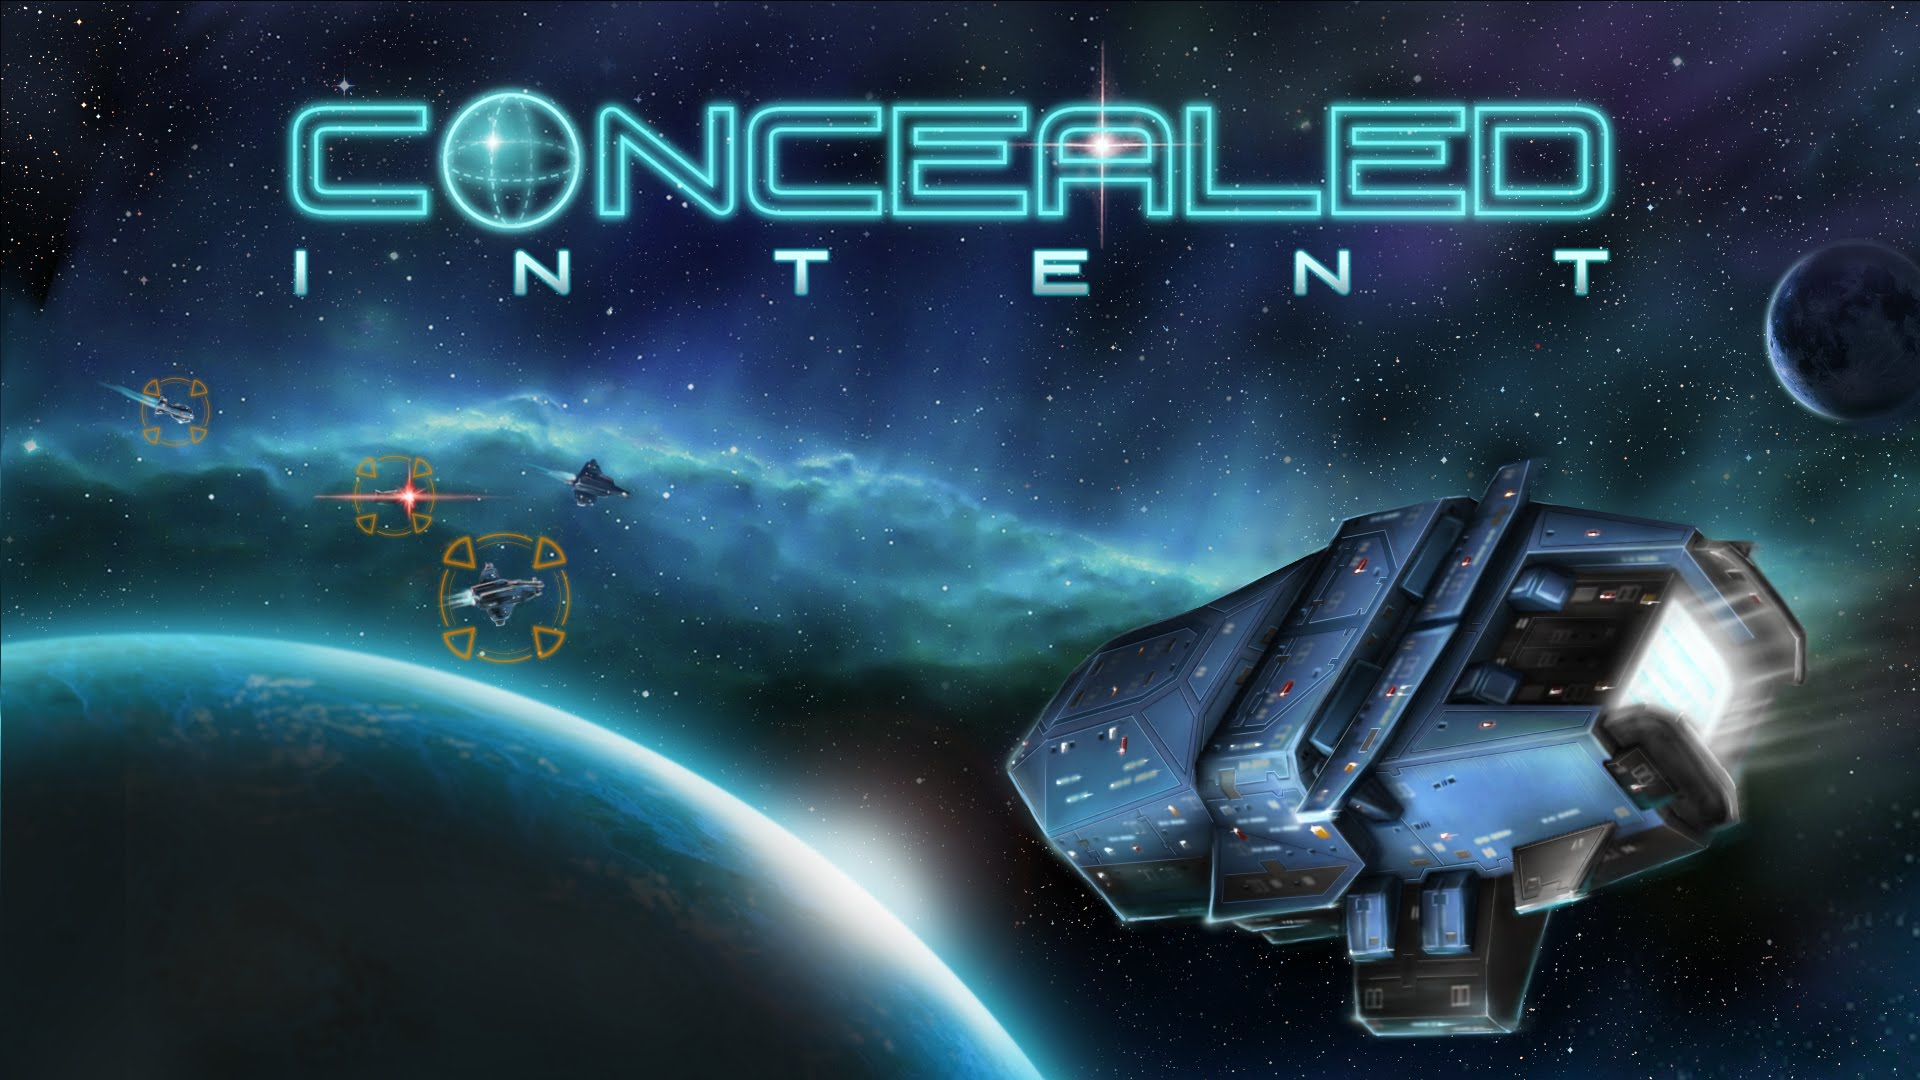 Concealed Intent